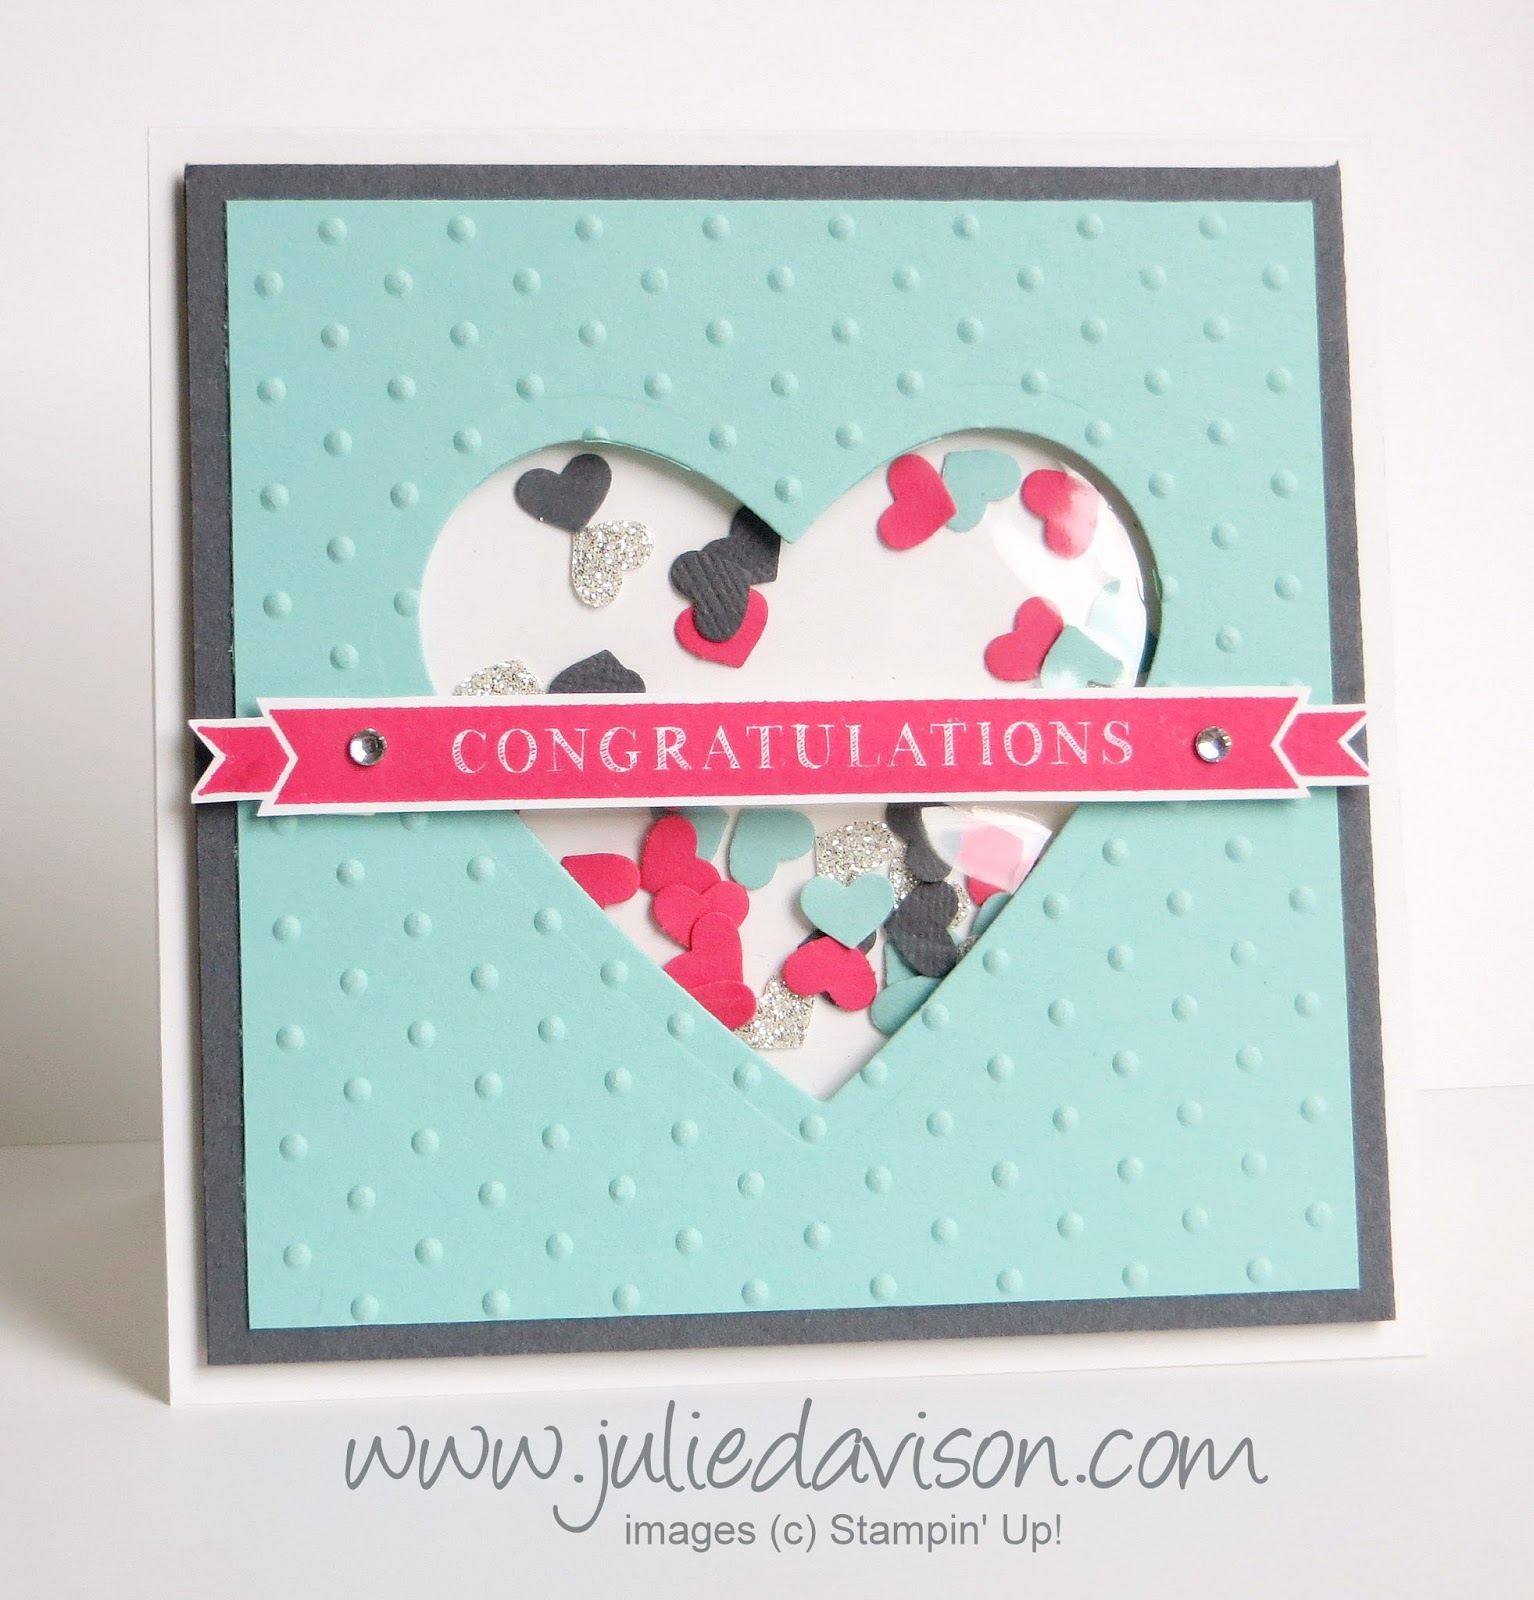 Stampin' Up! Occasions 4 You Wedding Shaker Card